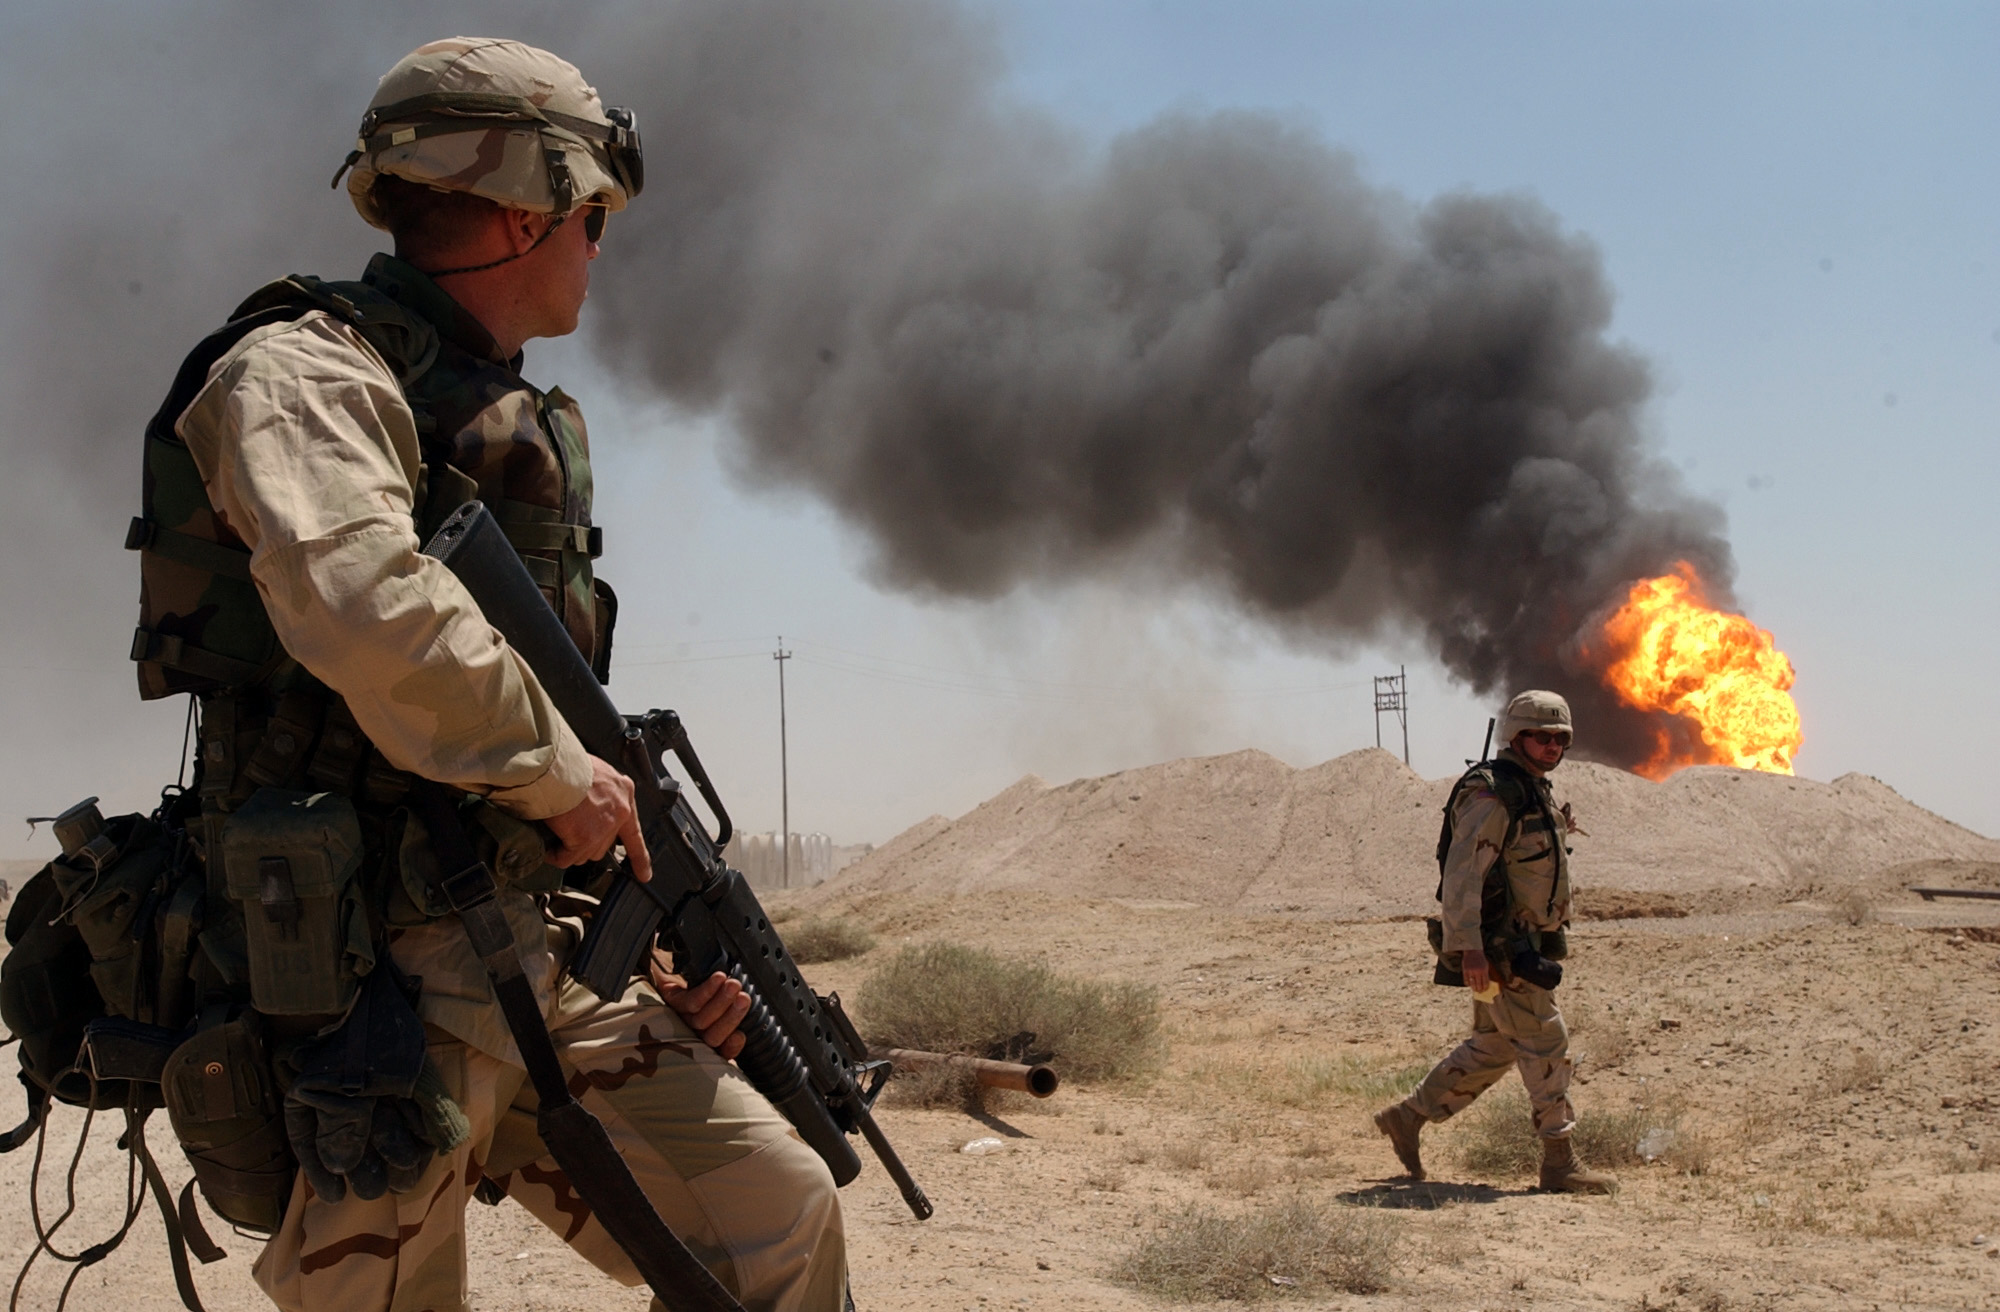 Why Did We Invade Iraq?